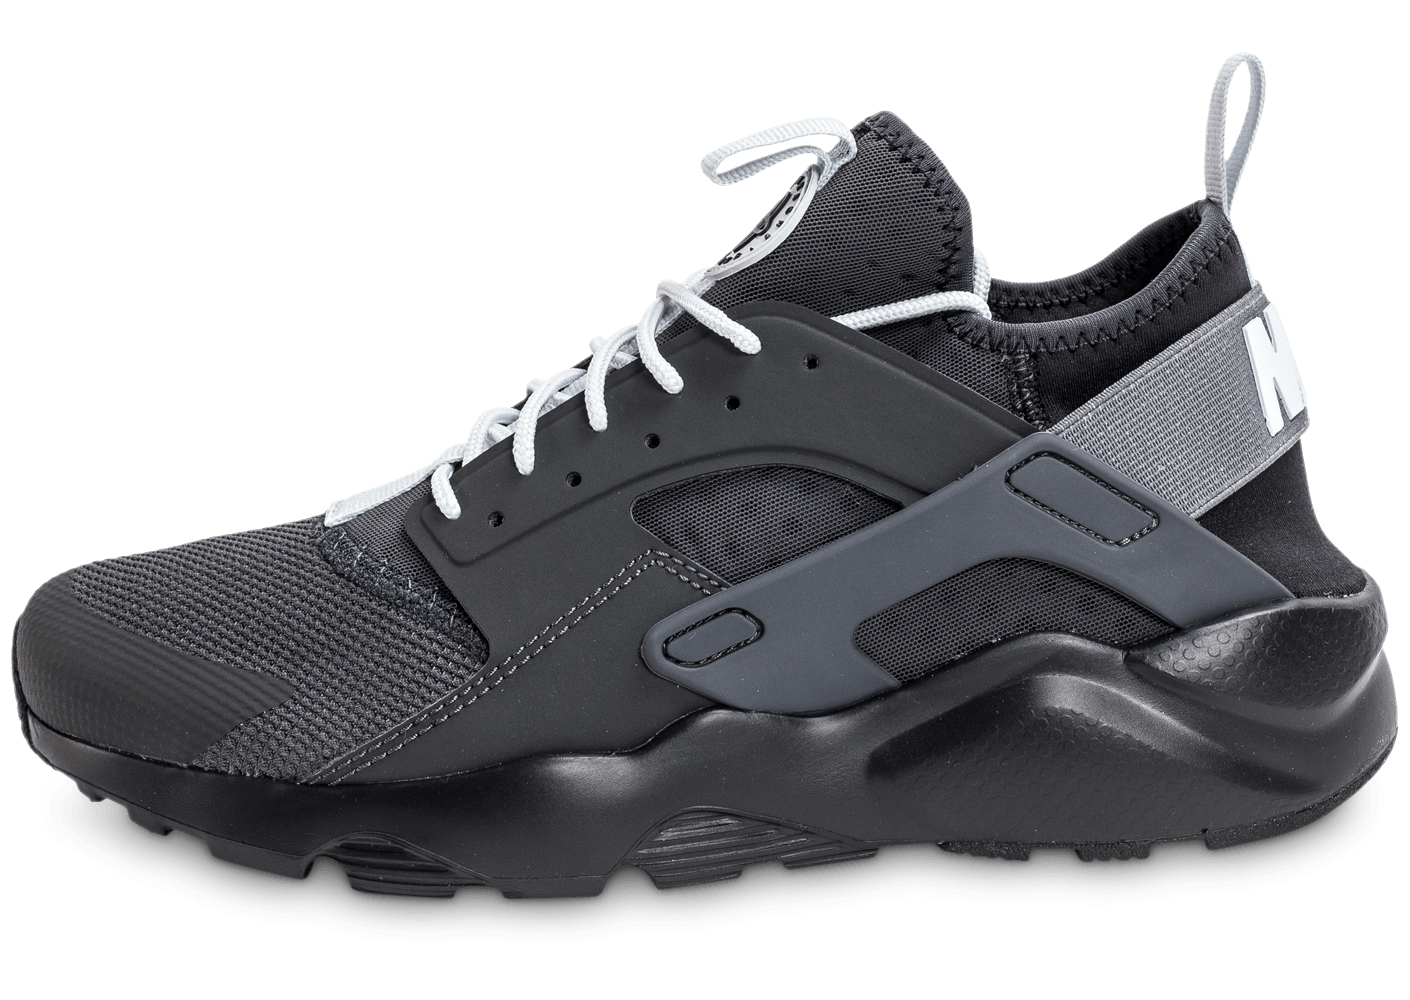 nike air huarache run ultra cool noire et blanche chaussures homme chausport. Black Bedroom Furniture Sets. Home Design Ideas